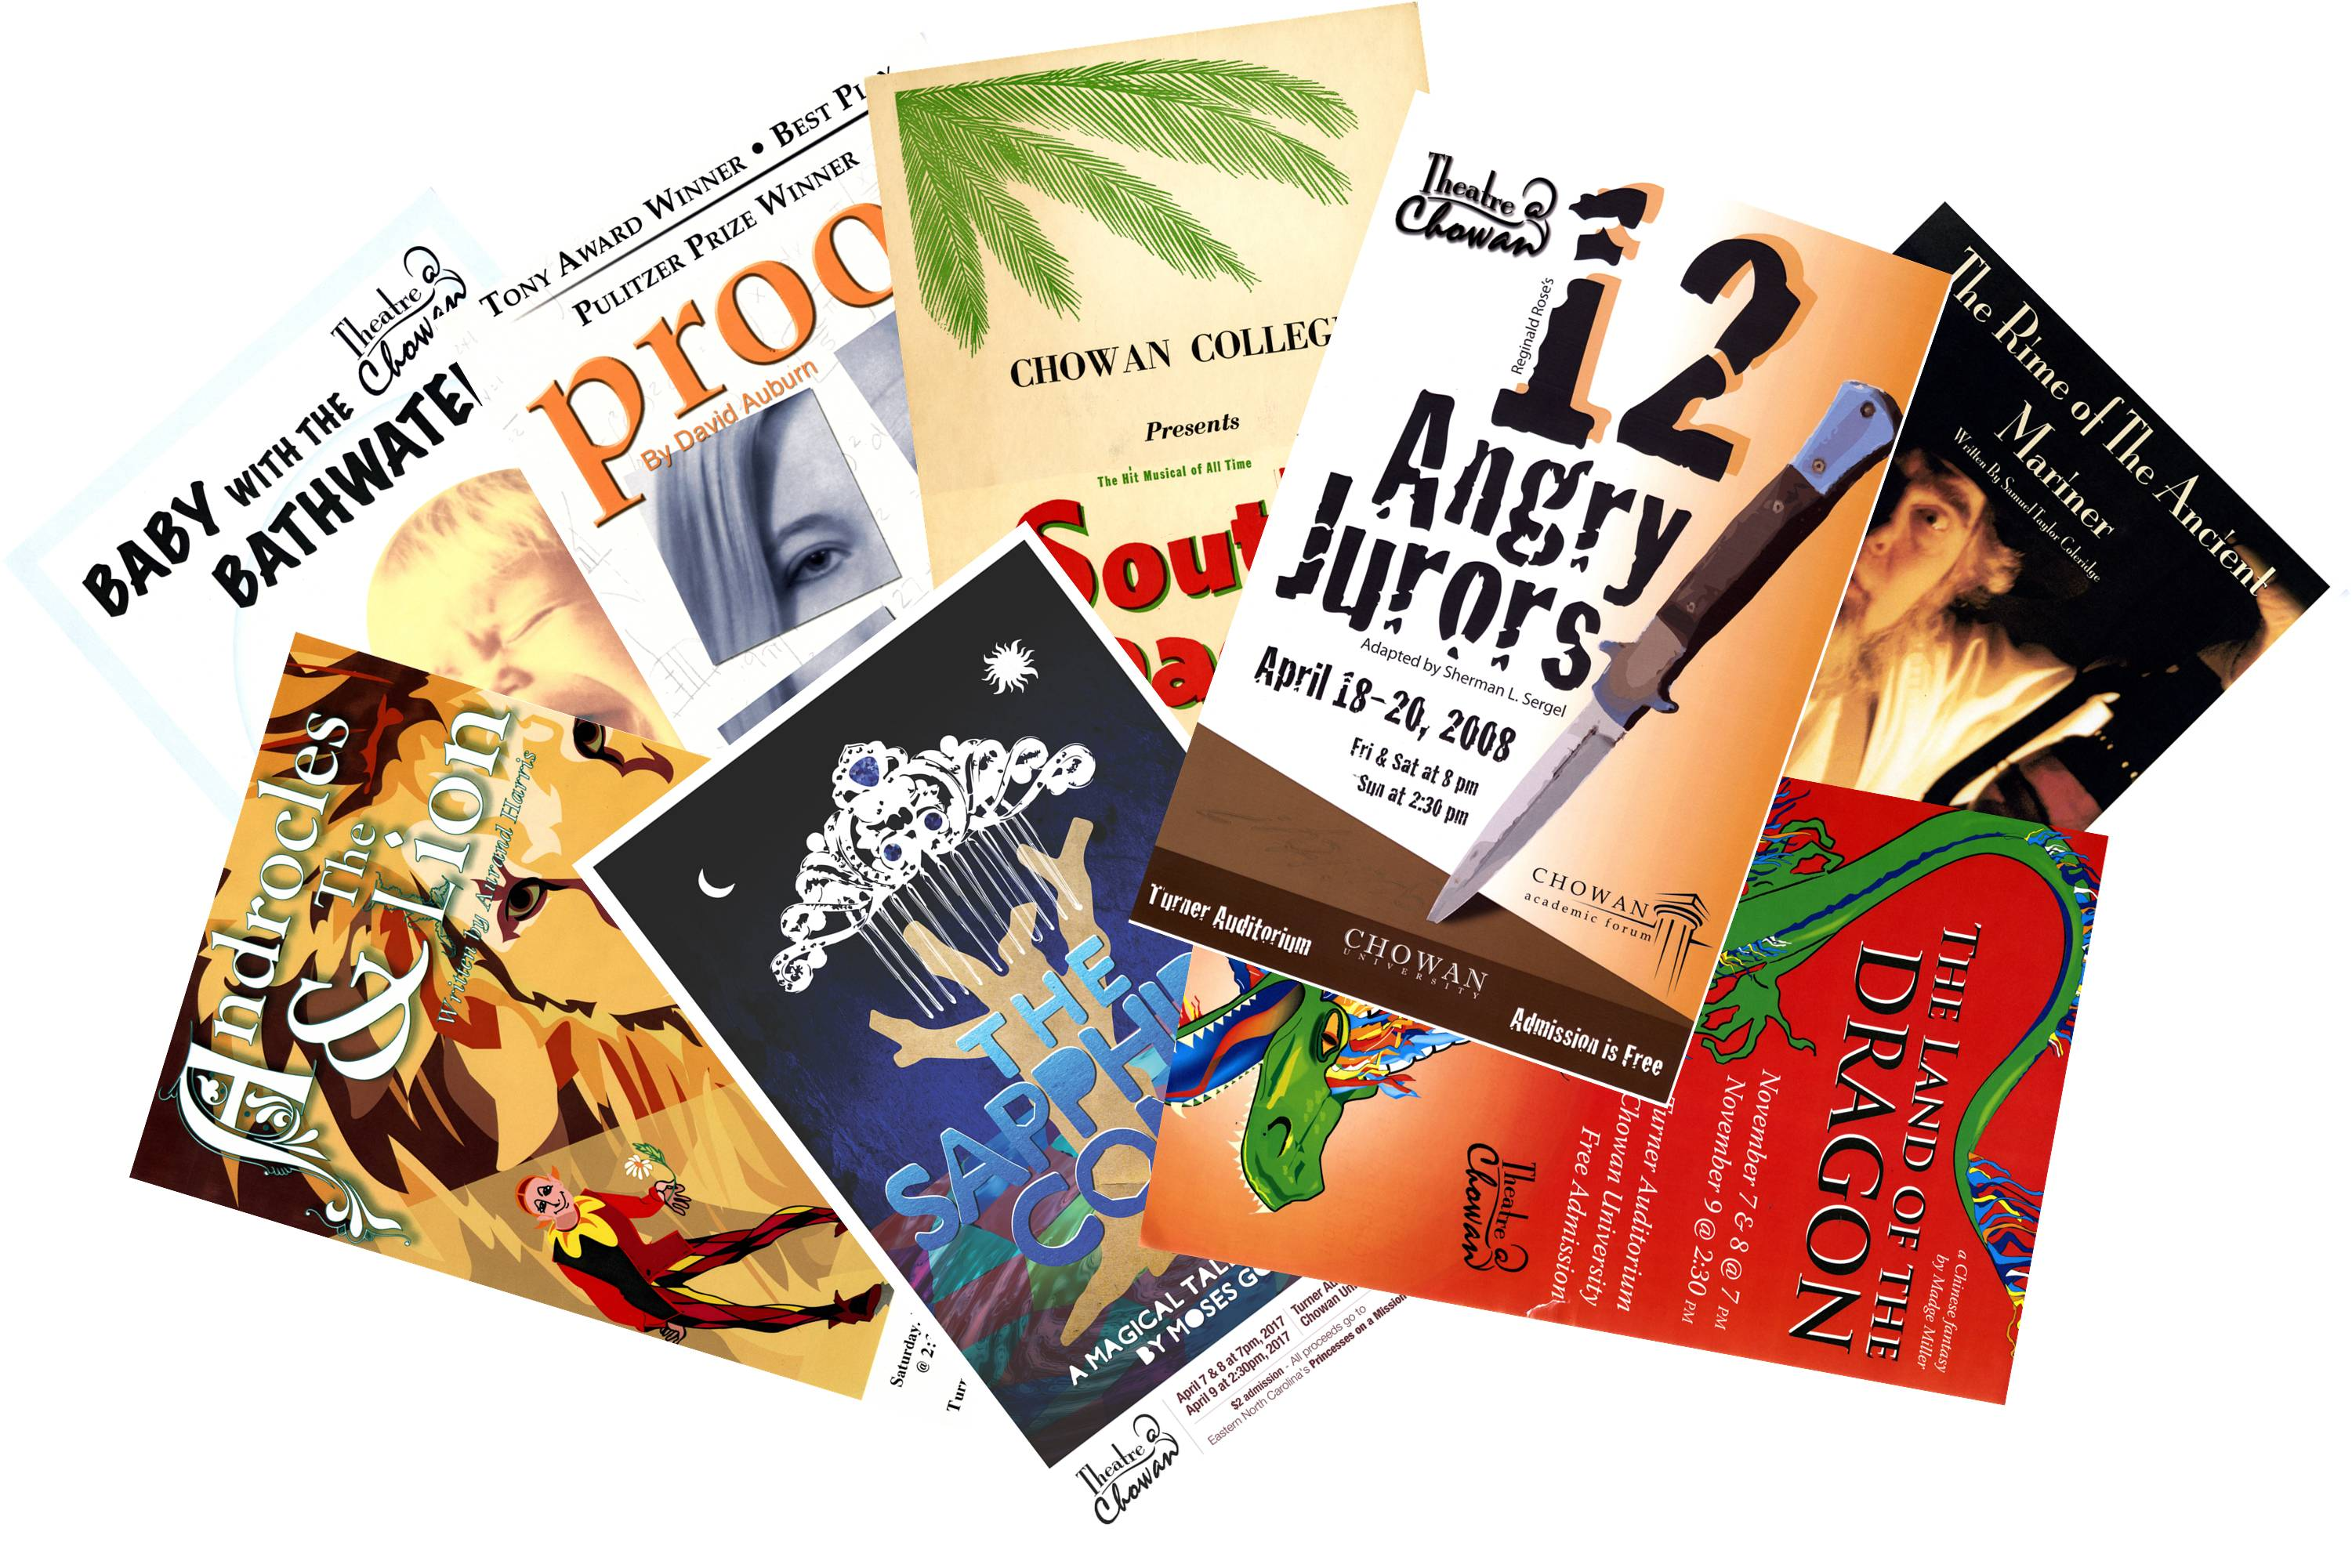 Theater Poster Exhibition: The History of Theater at Chowan